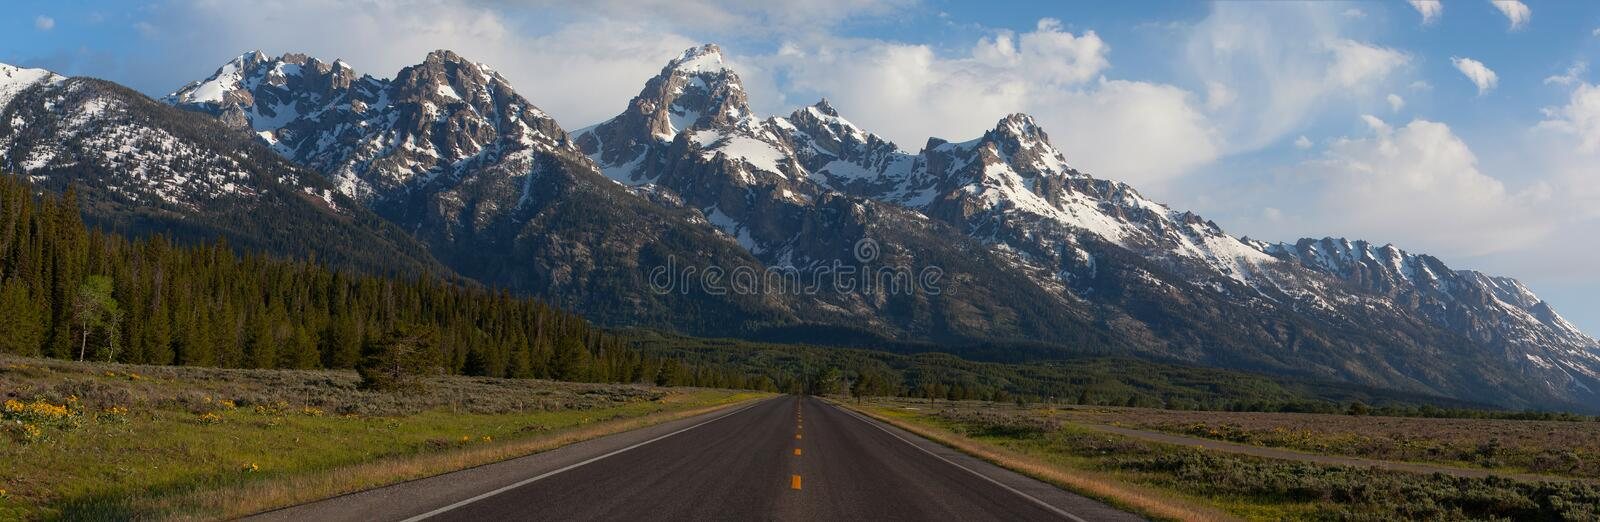 Road to the Grand Tetons royalty free stock images